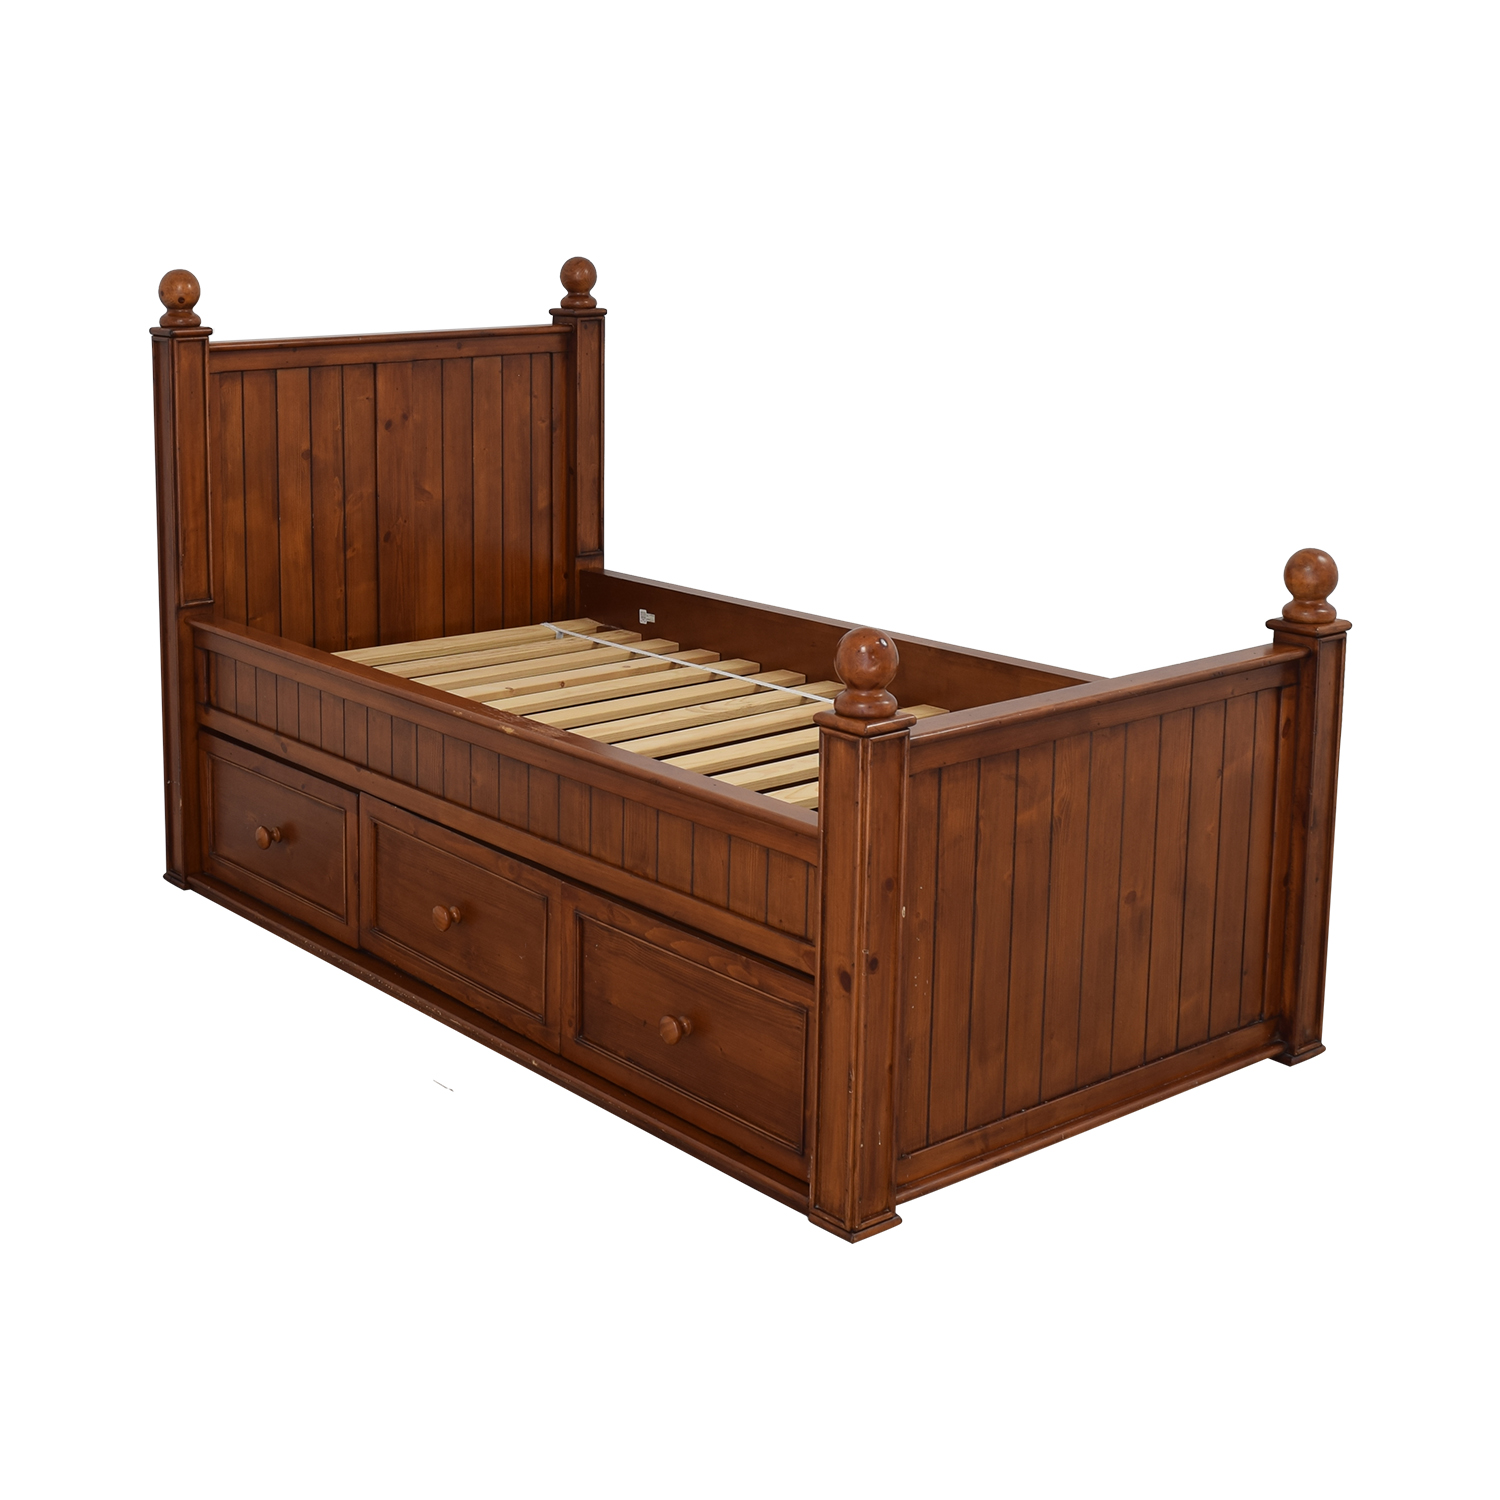 77% OFF - Pottery Barn Kids Pottery Barn Kids Twin Bed with Storage / Beds